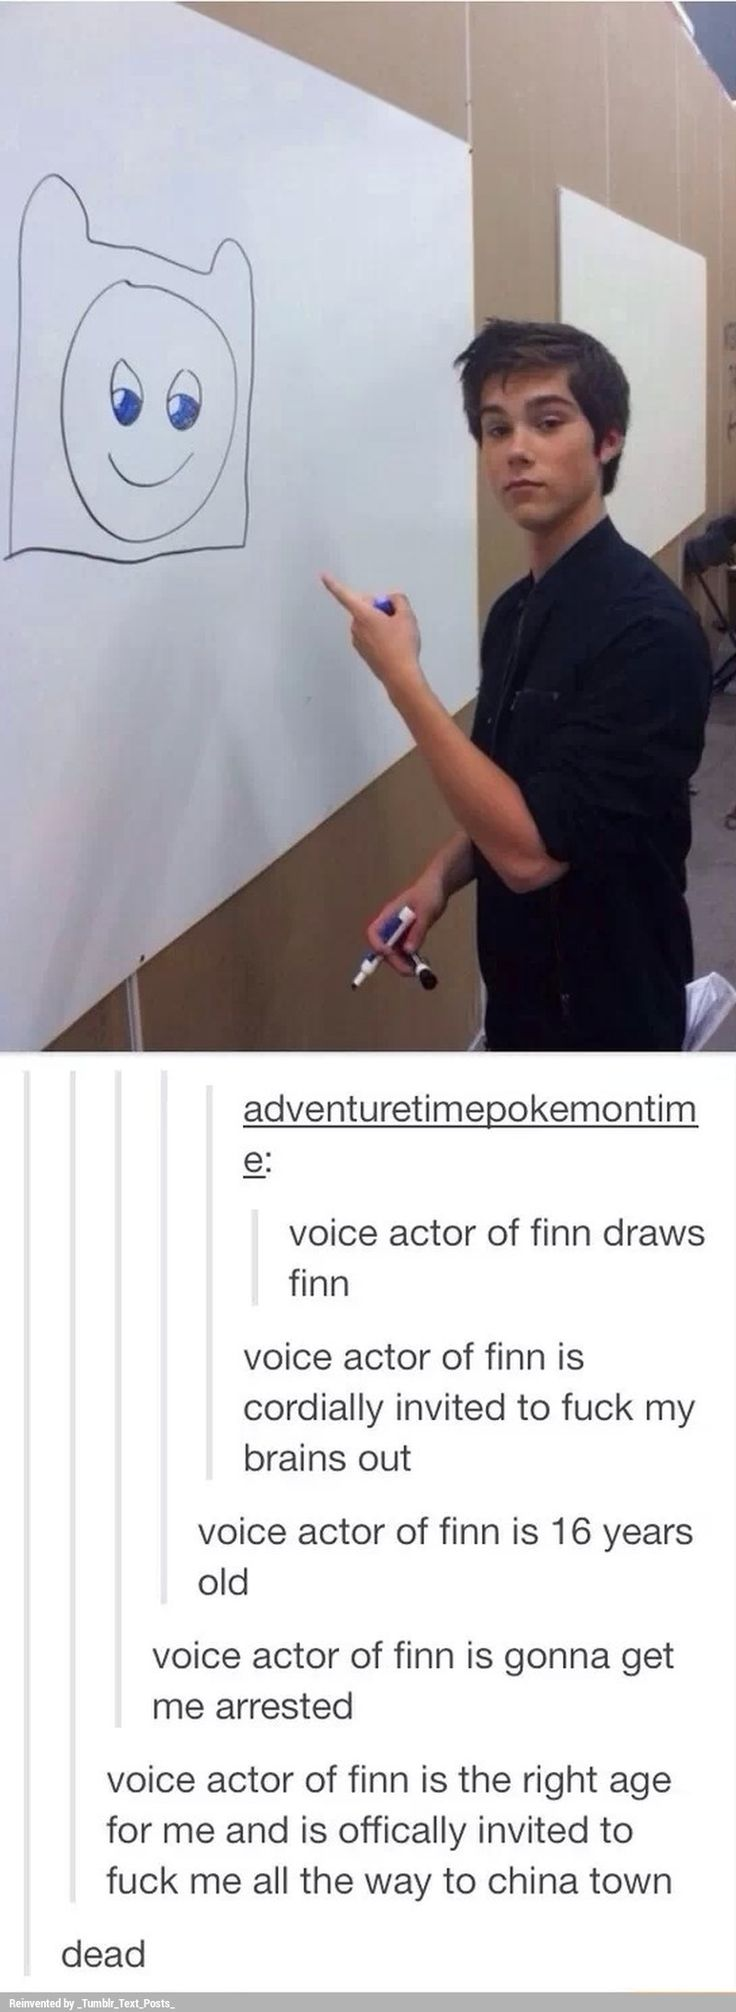 Voice actor of Finn can be my official rebound lol